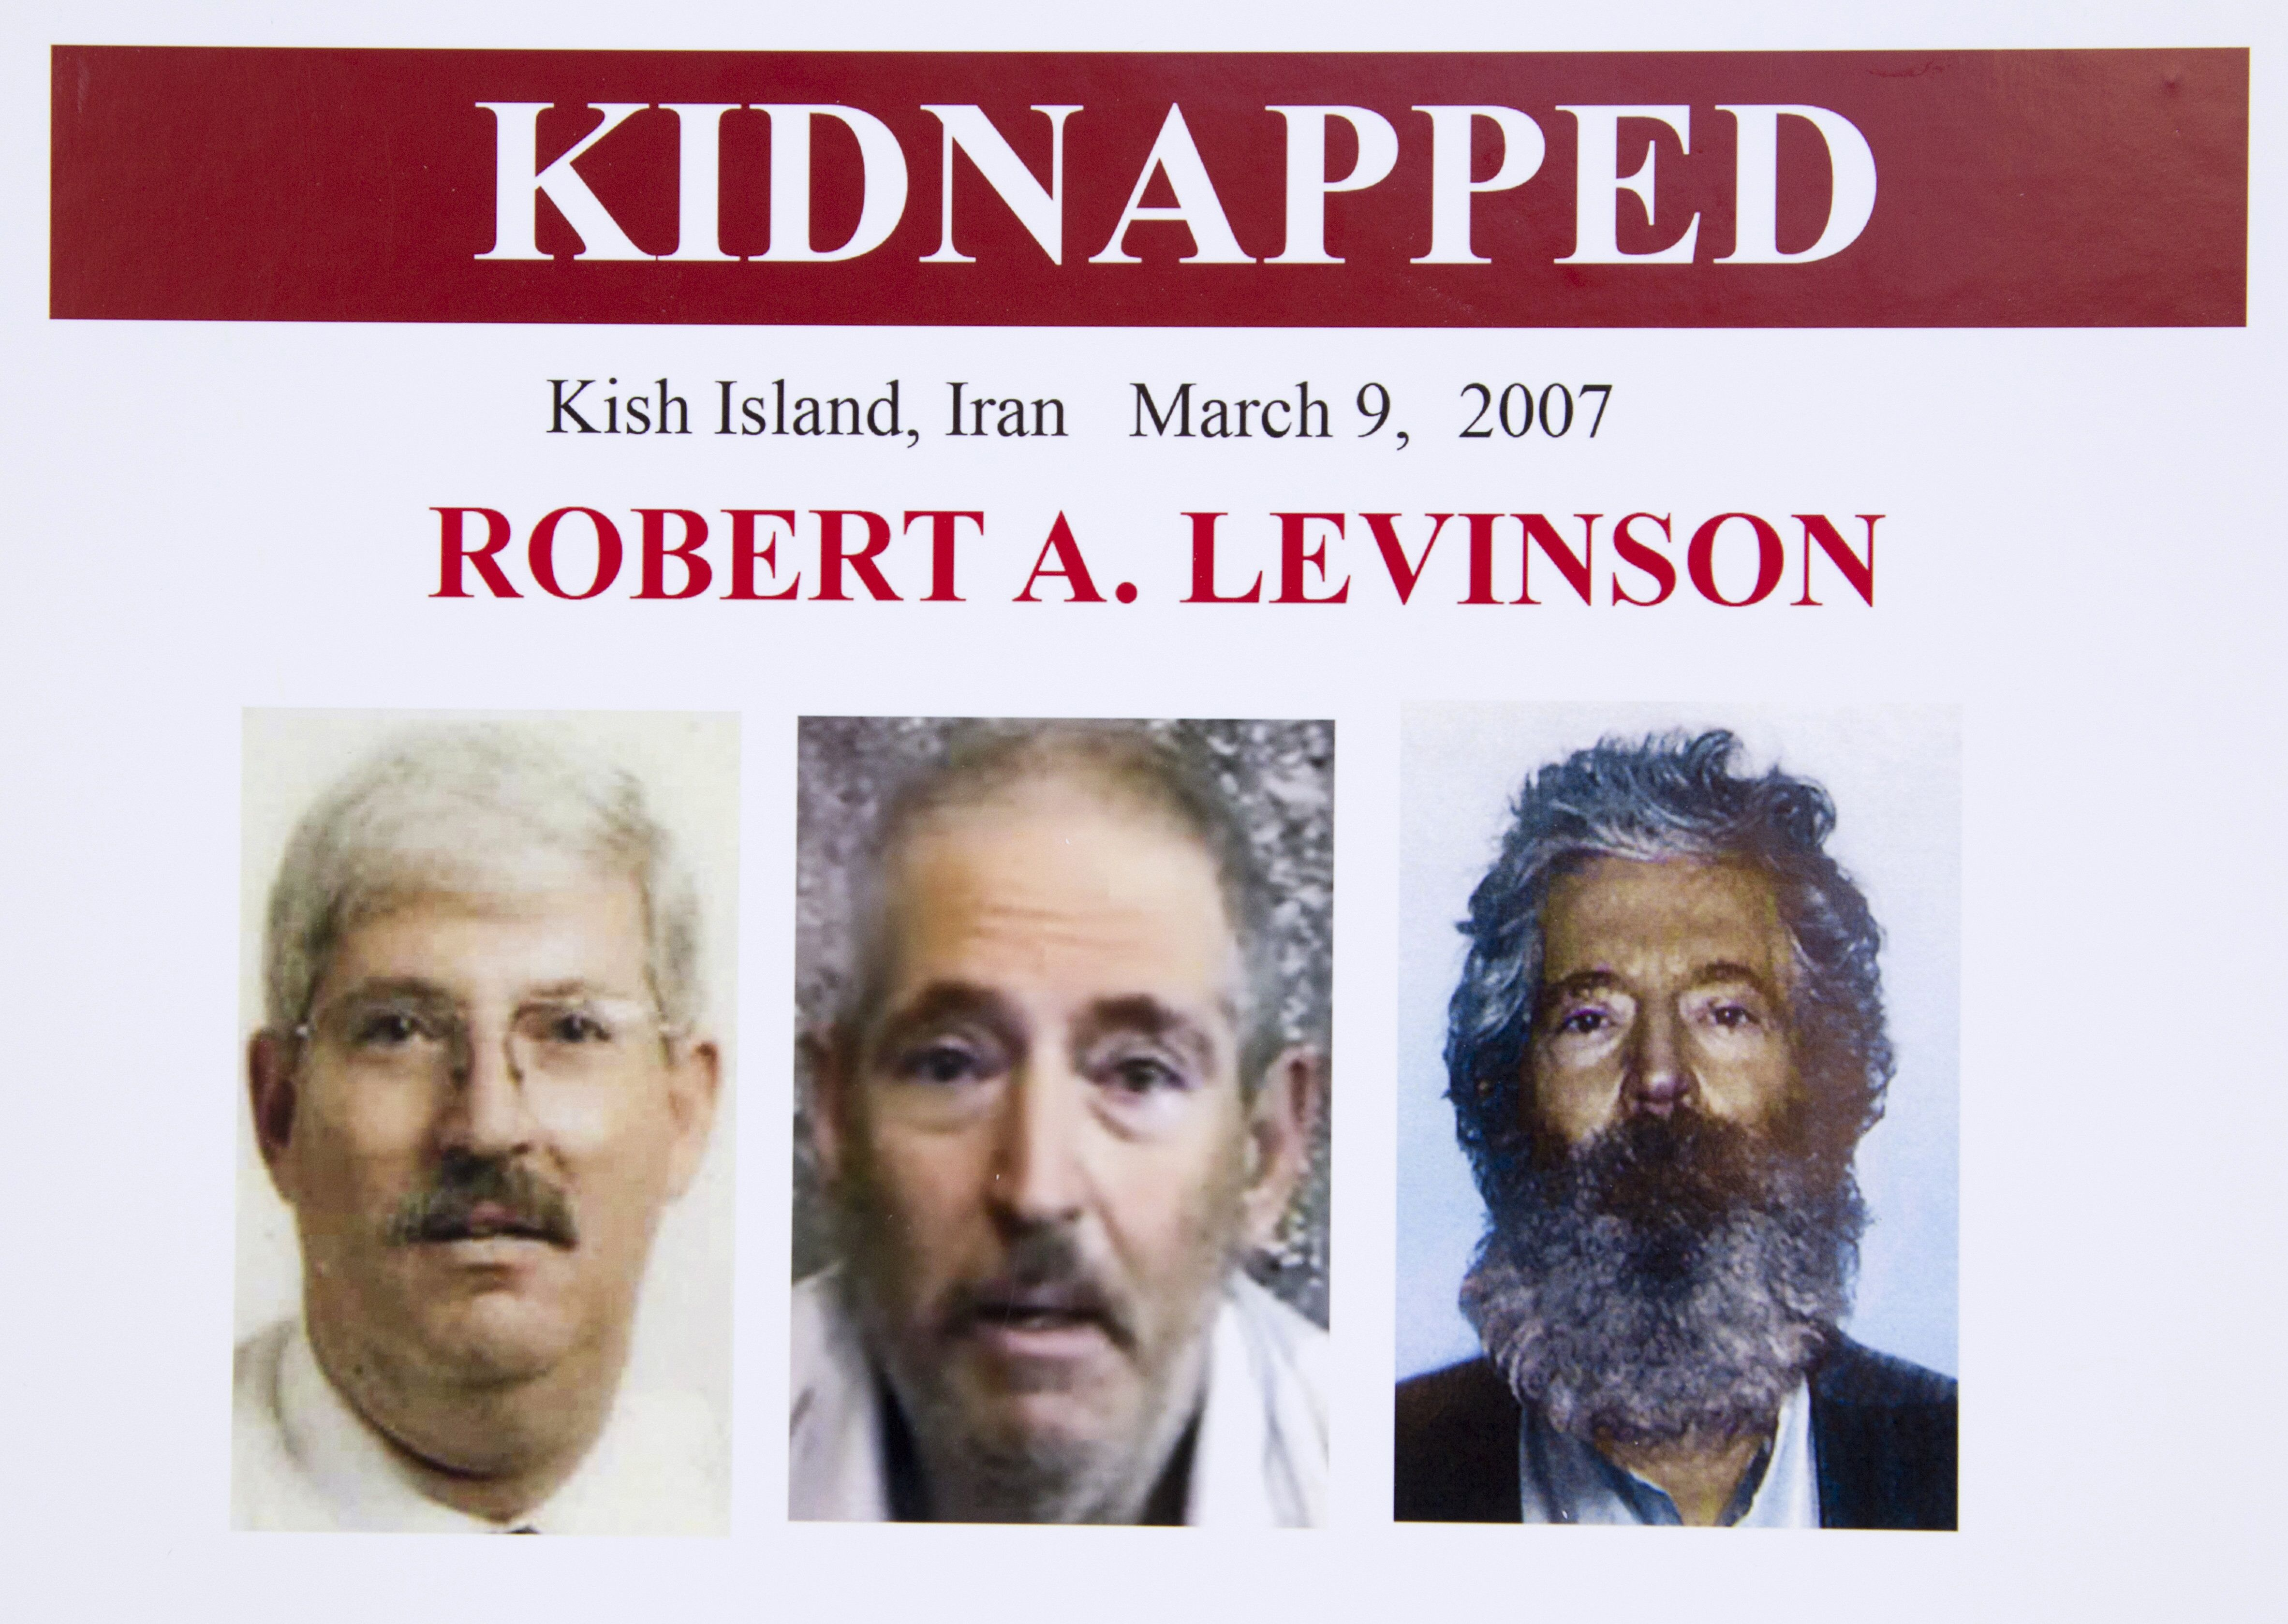 An FBI poster showing a composite image of former FBI agent Robert Levinson (R) of how he would look like now after five years in captivity, and an image (C) taken from the video released by his kidnappers, and a picture before he was kidnapped (L).